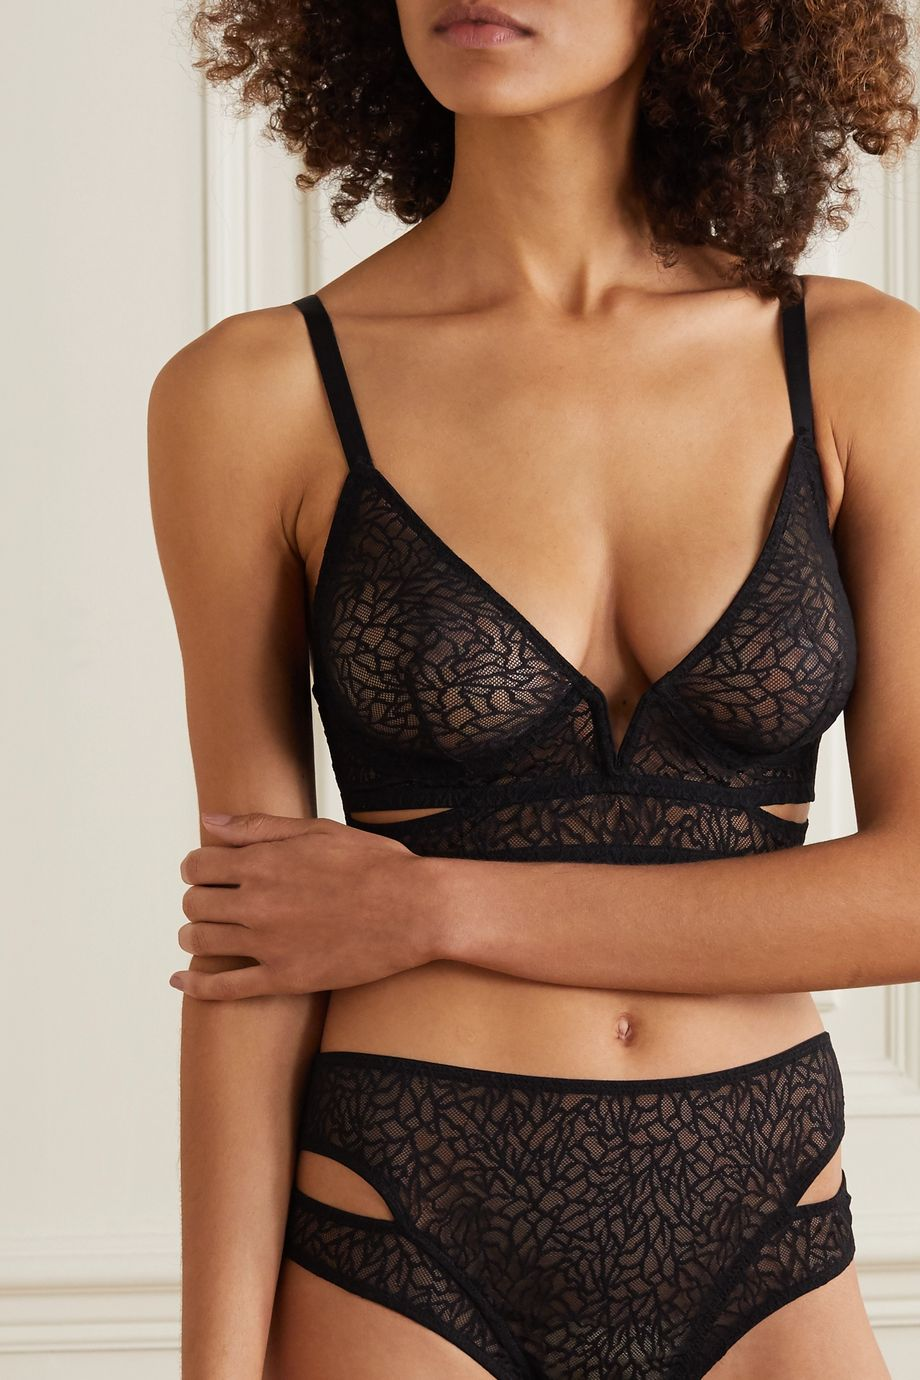 ELSE Zoe Triangel-BH aus Stretch-Mesh mit Cut-outs